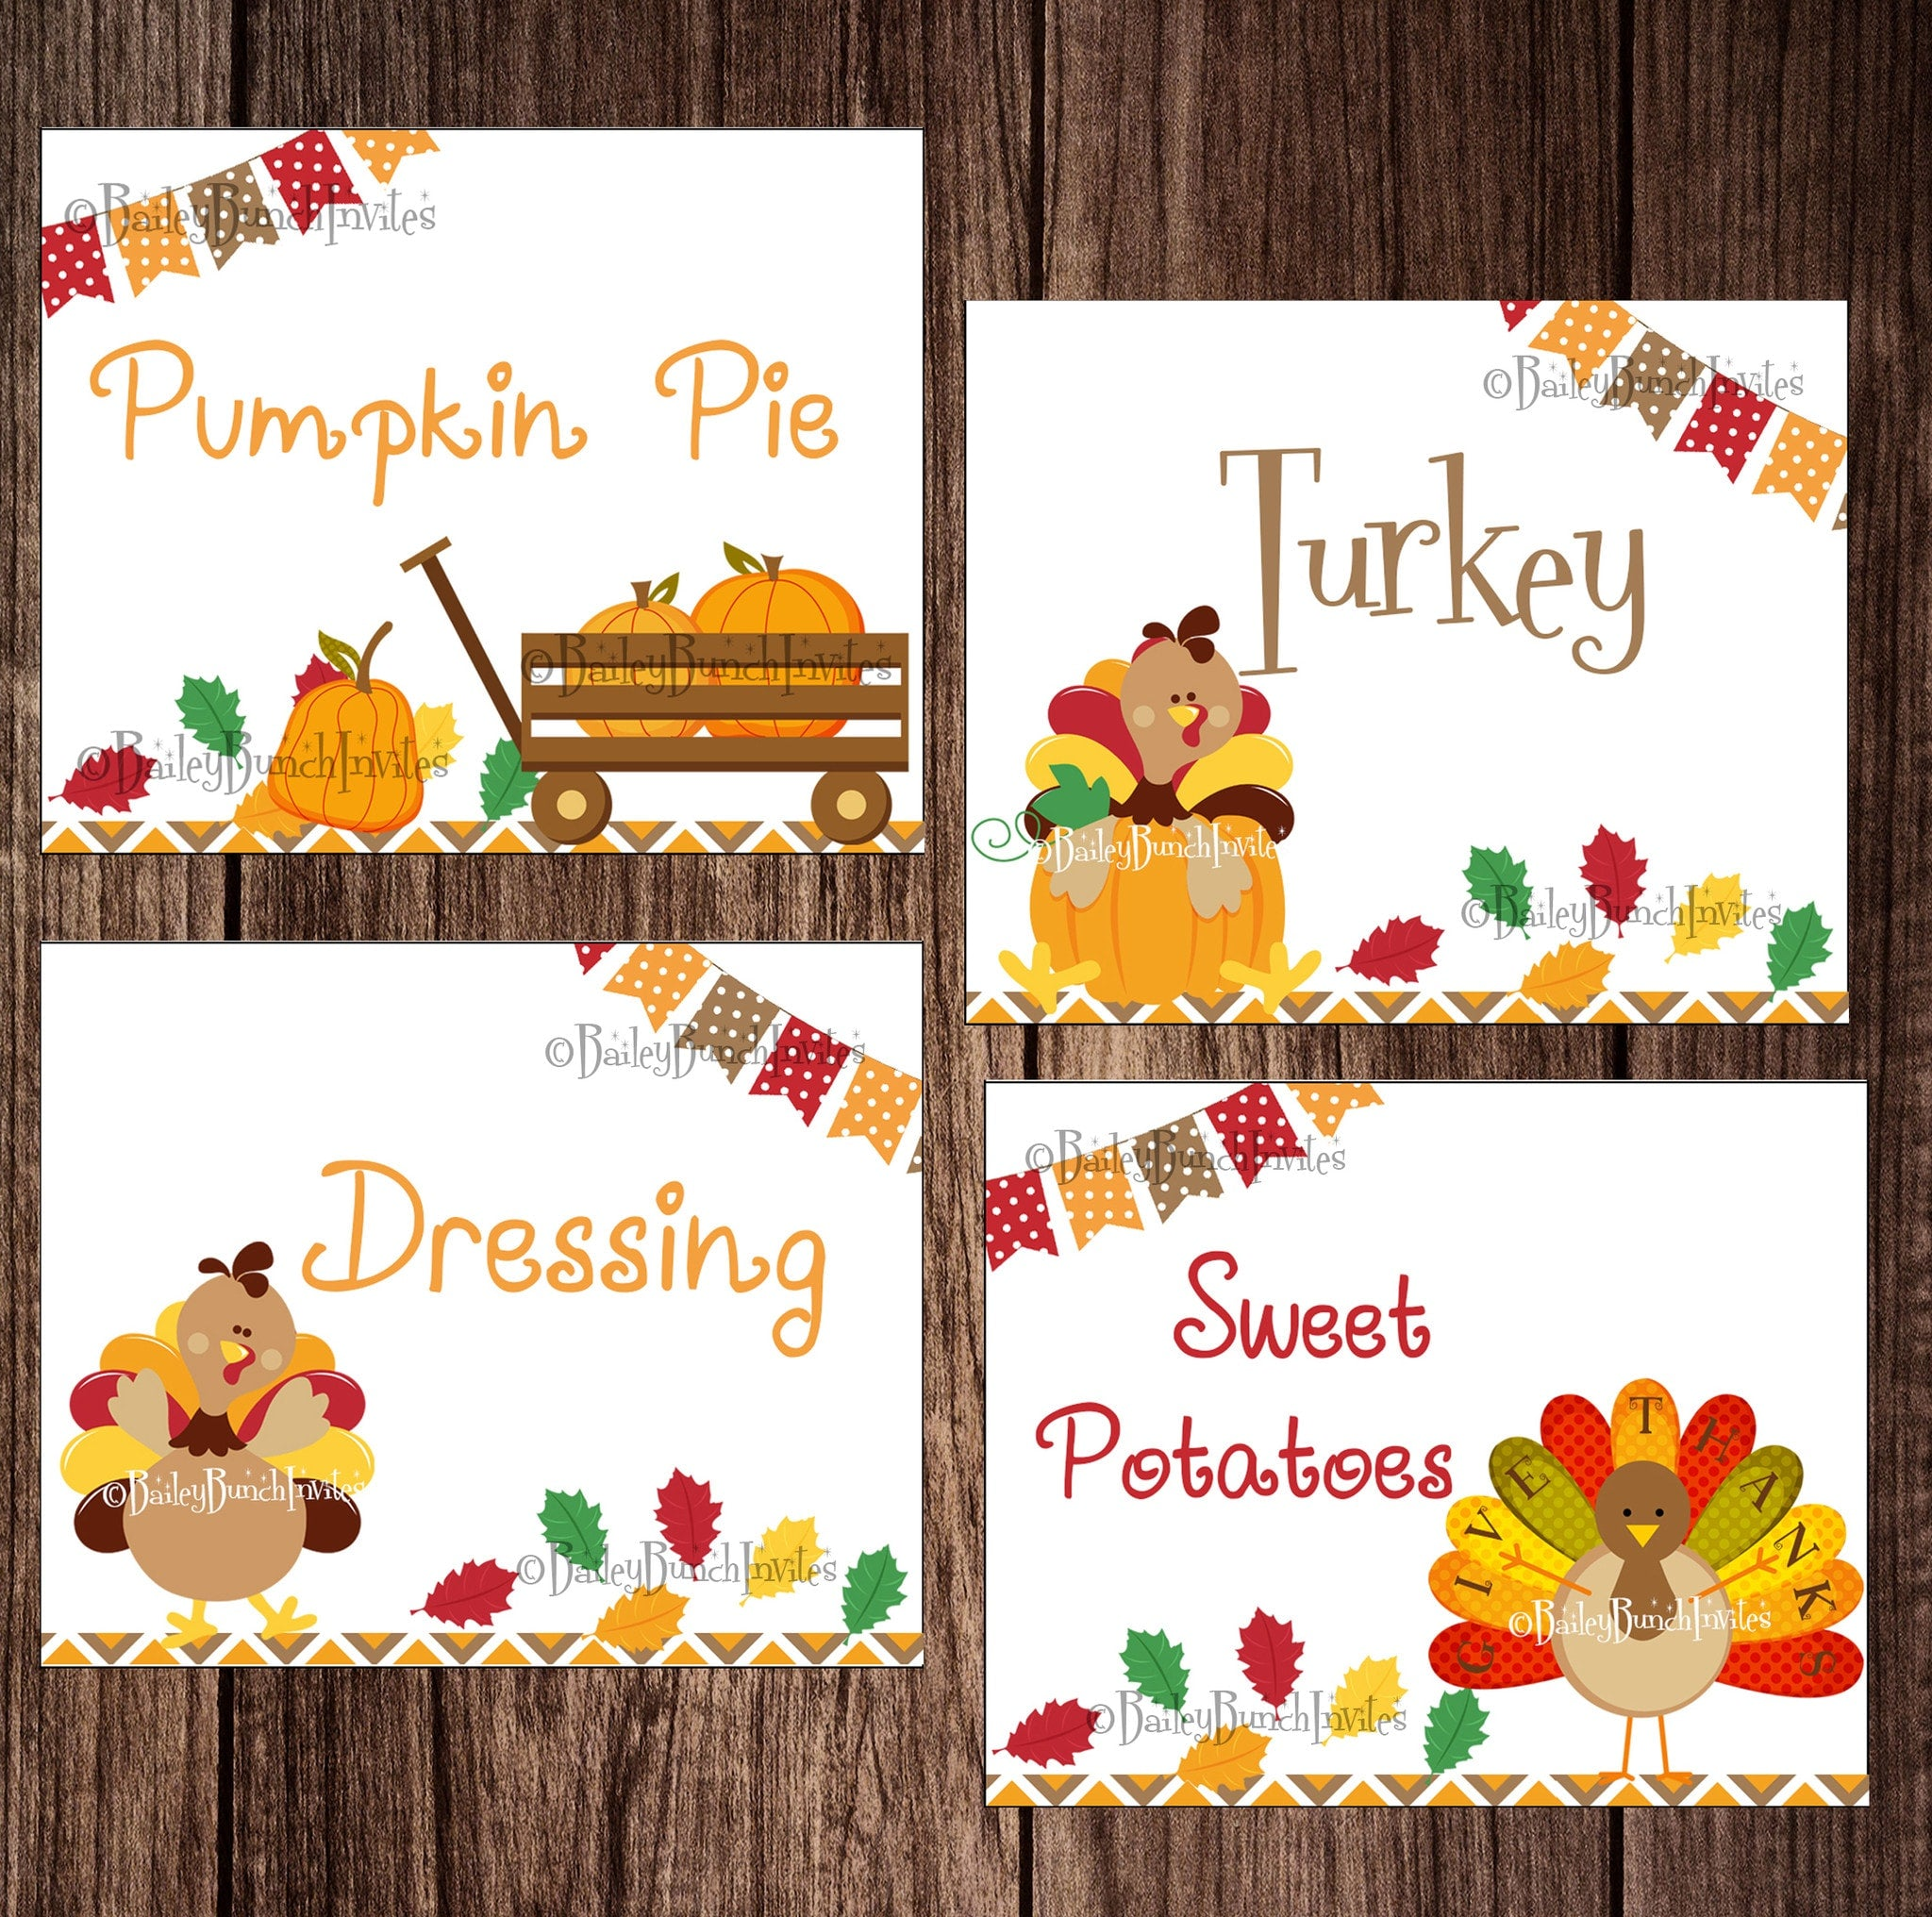 Thanksgiving Turkey Holiday Food Tents Place Cards Food Labels INSTANT DOWNLOAD IDTHANKTENT0520  sc 1 st  Bailey Bunch Designs & Thanksgiving Turkey Holiday Food Tents Place Cards Food Labels ...